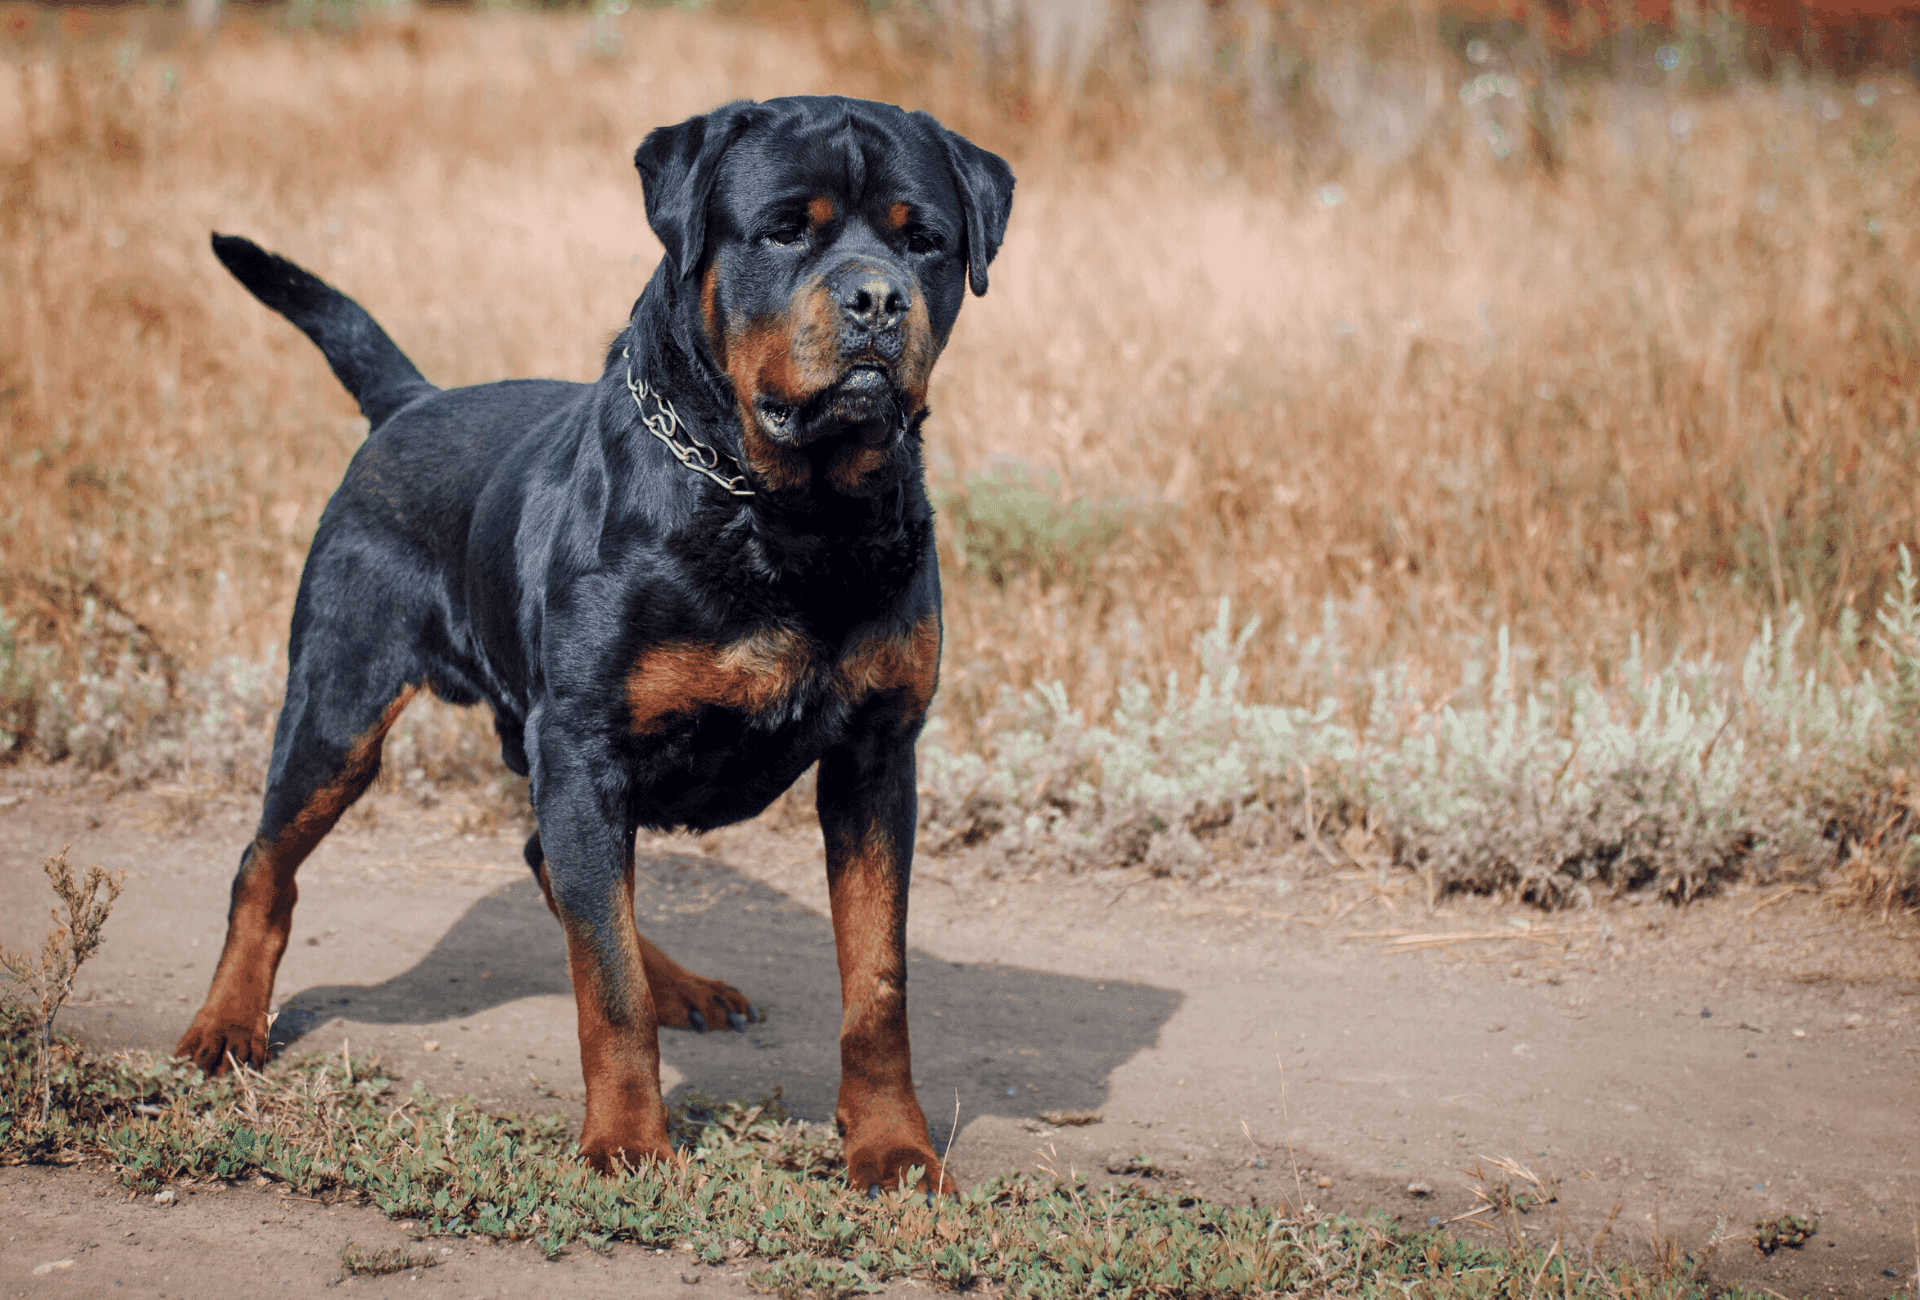 Male Rottweiler in mahogany and black color.